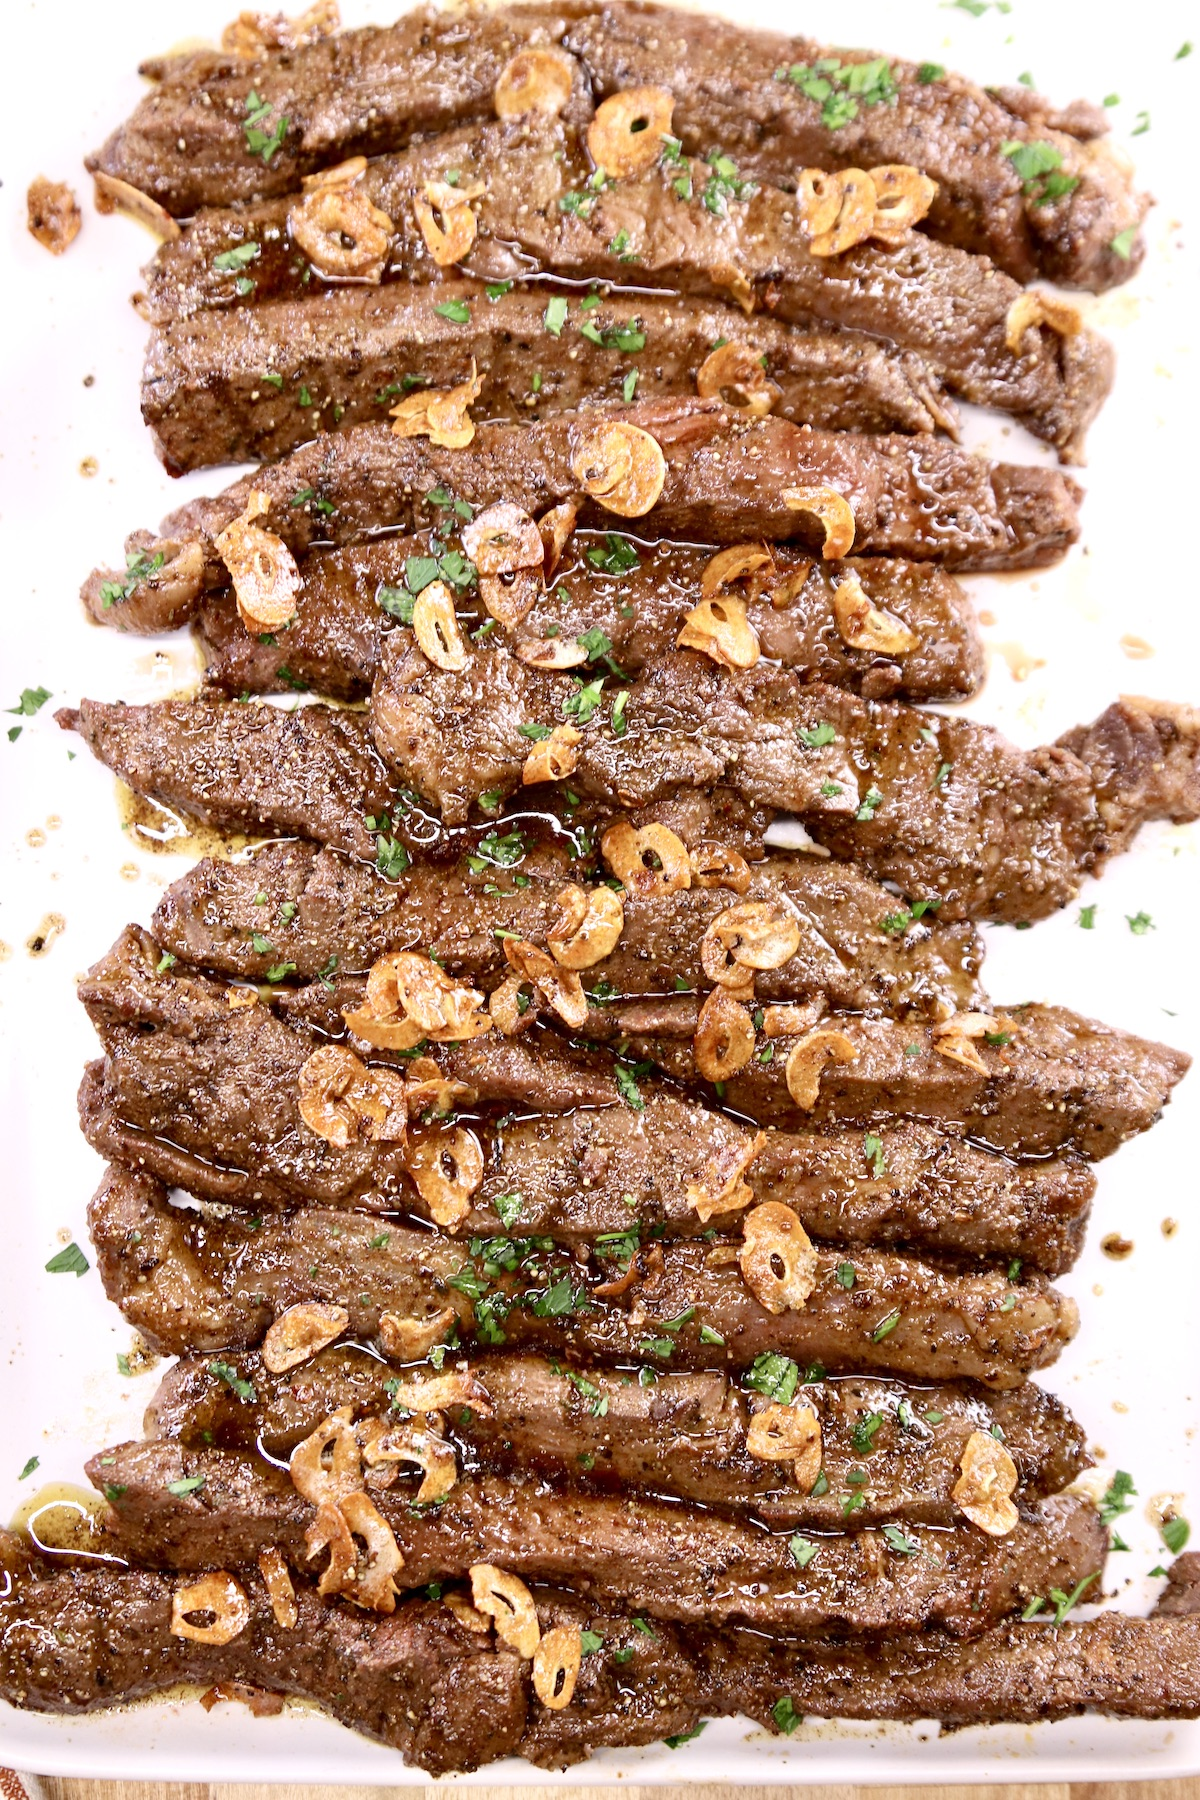 Steak Tips with garlic chips on a platter